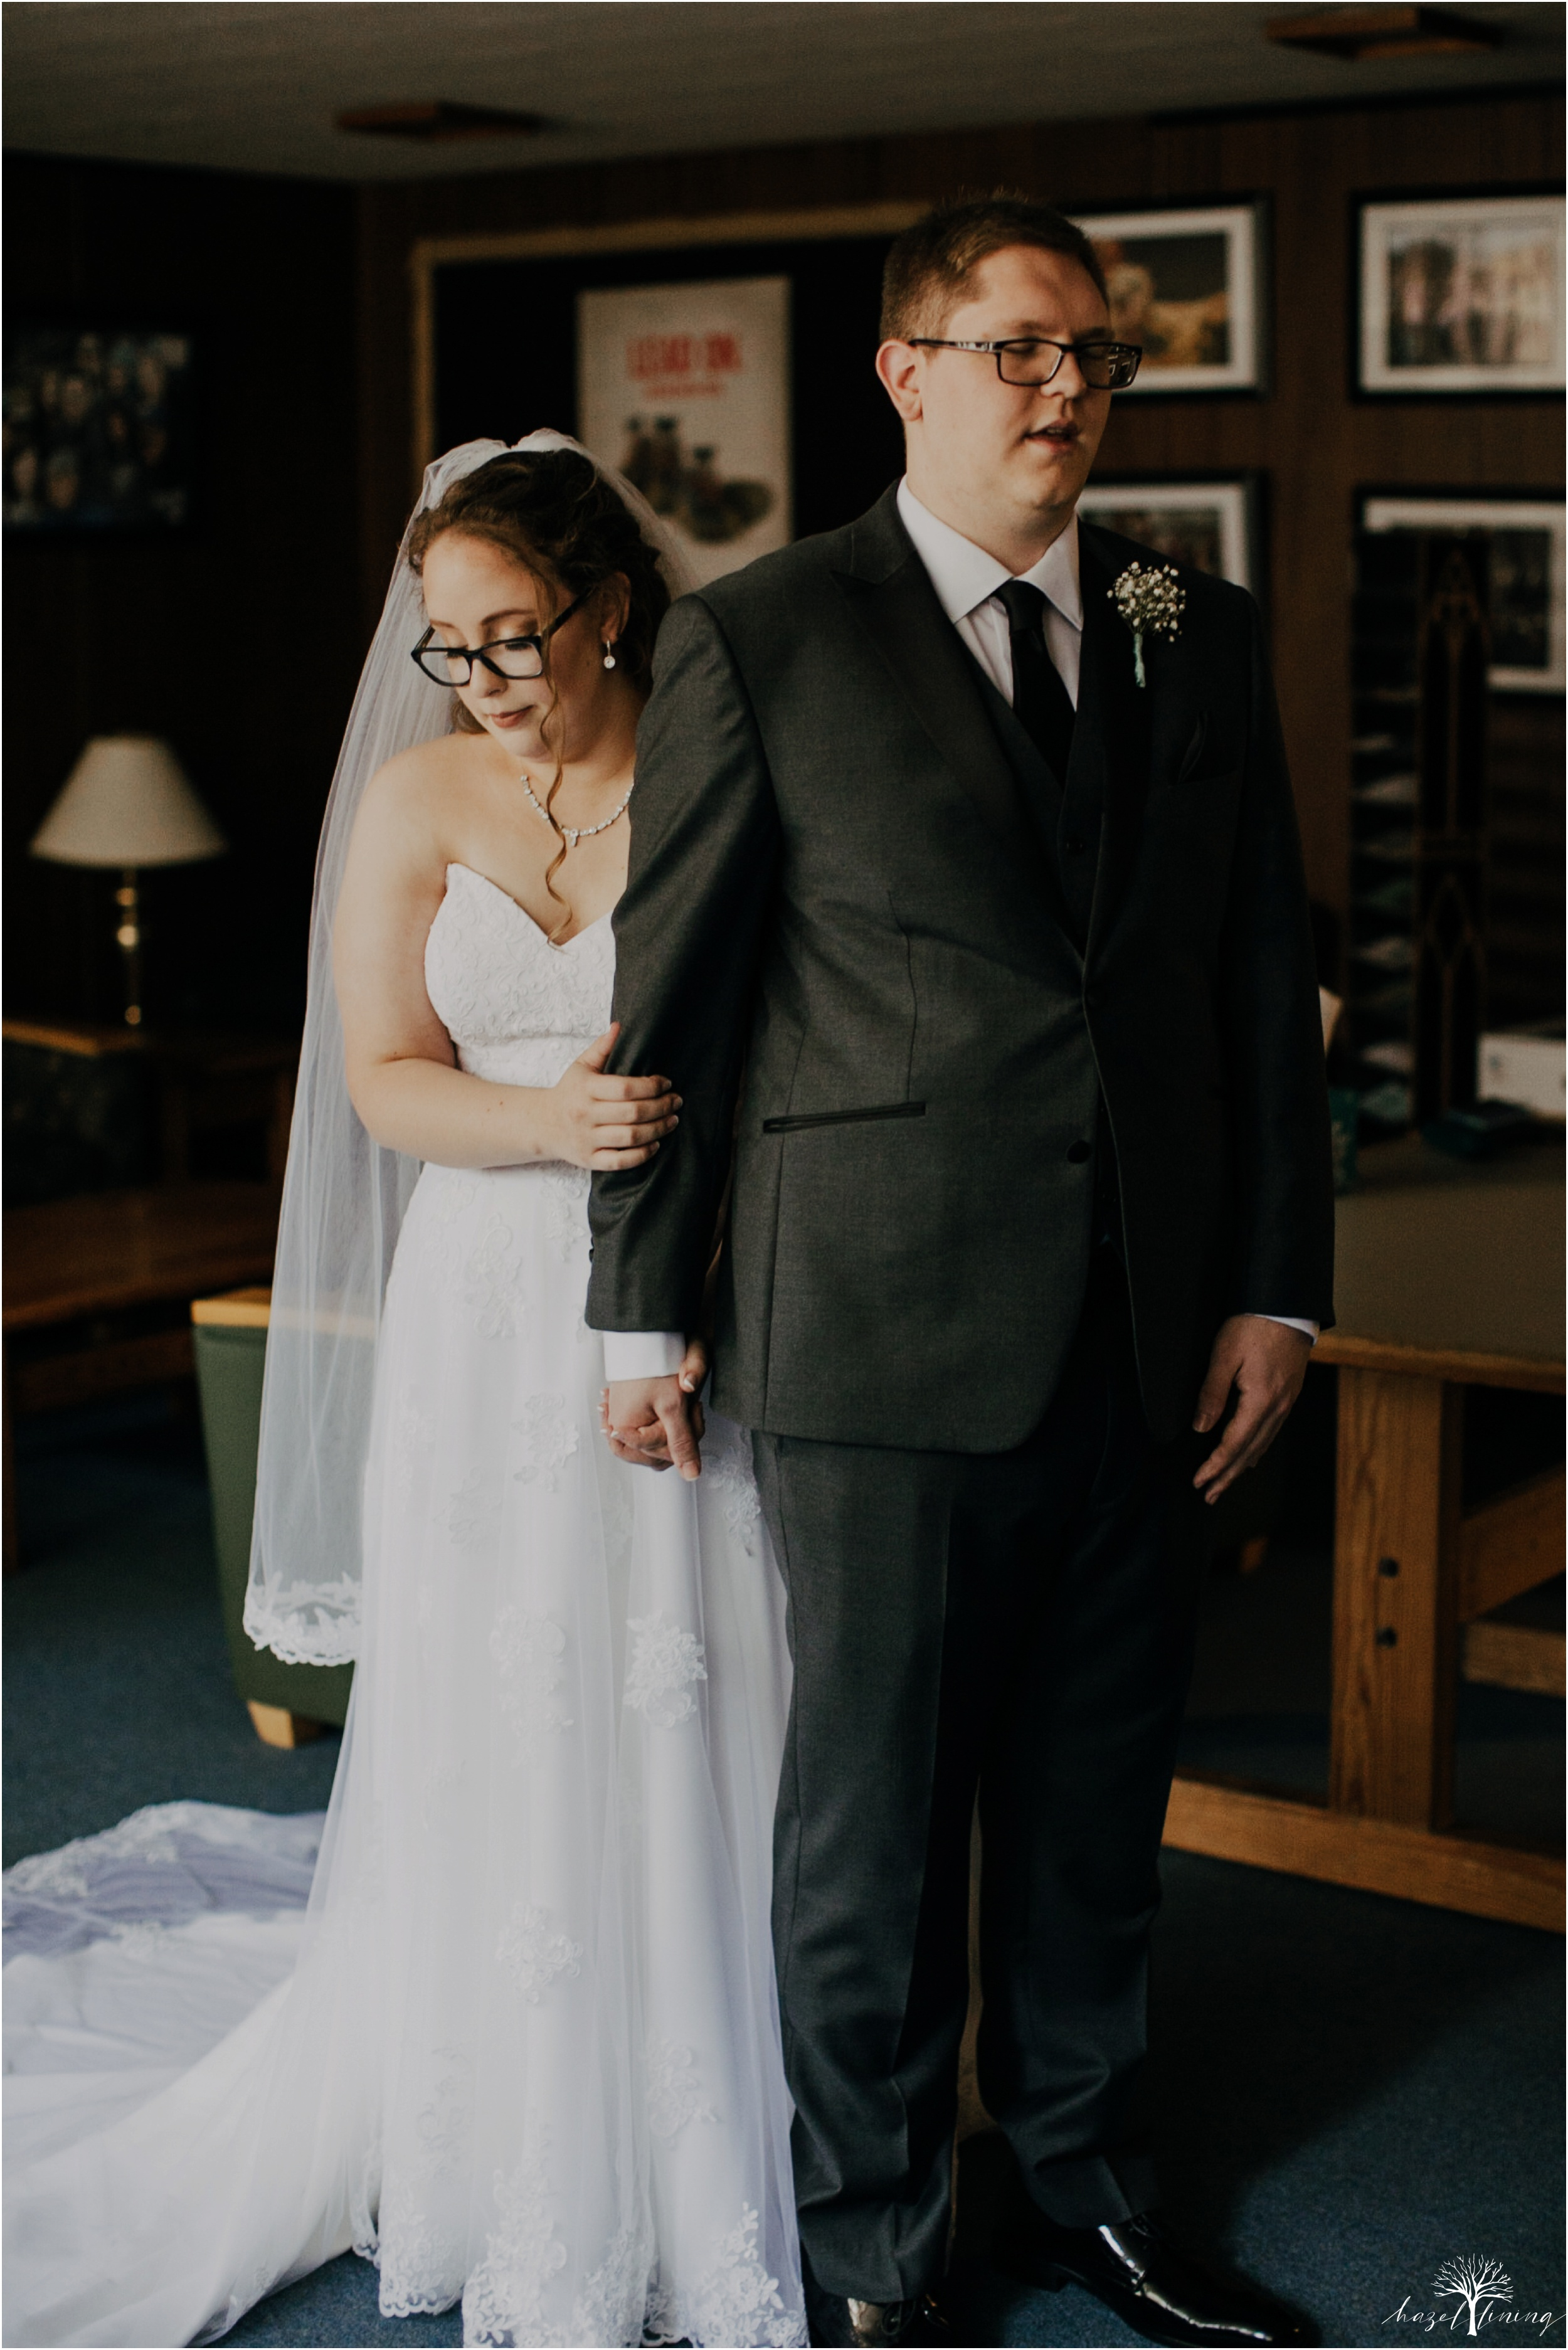 laura-zach-mccaskill-harmony-hall-lebanon-valley-college-summer-wedding-hazel-lining-photography-destination-elopement-wedding-engagement-photography_0048.jpg